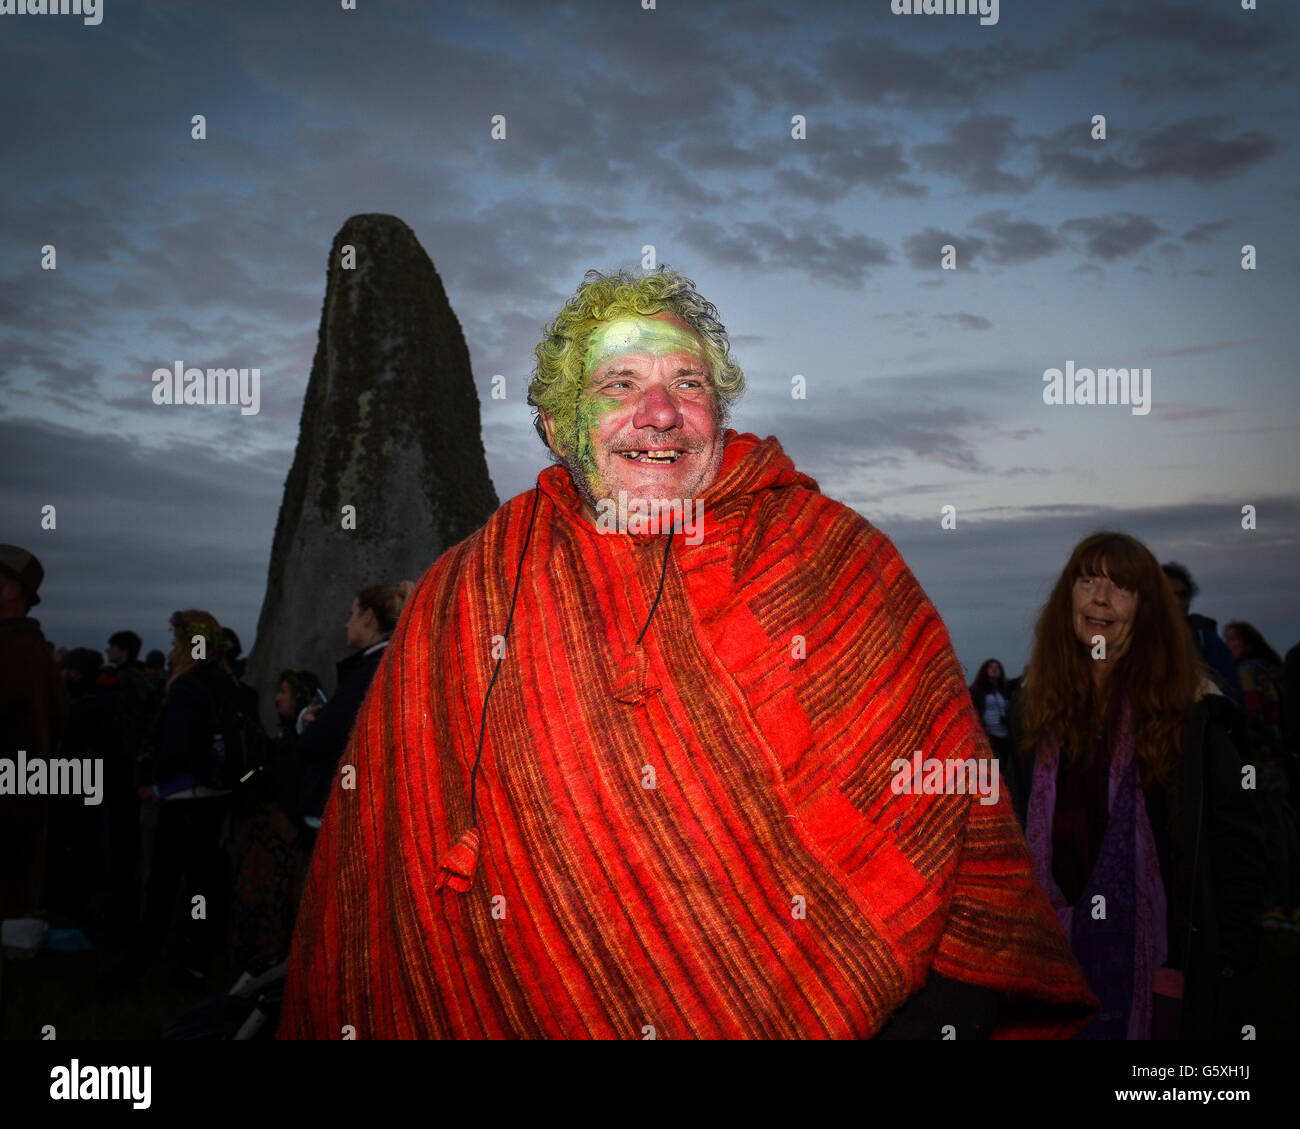 Revellers converge on Stonehenge to celebrate the Summer Solstice - Stock Image